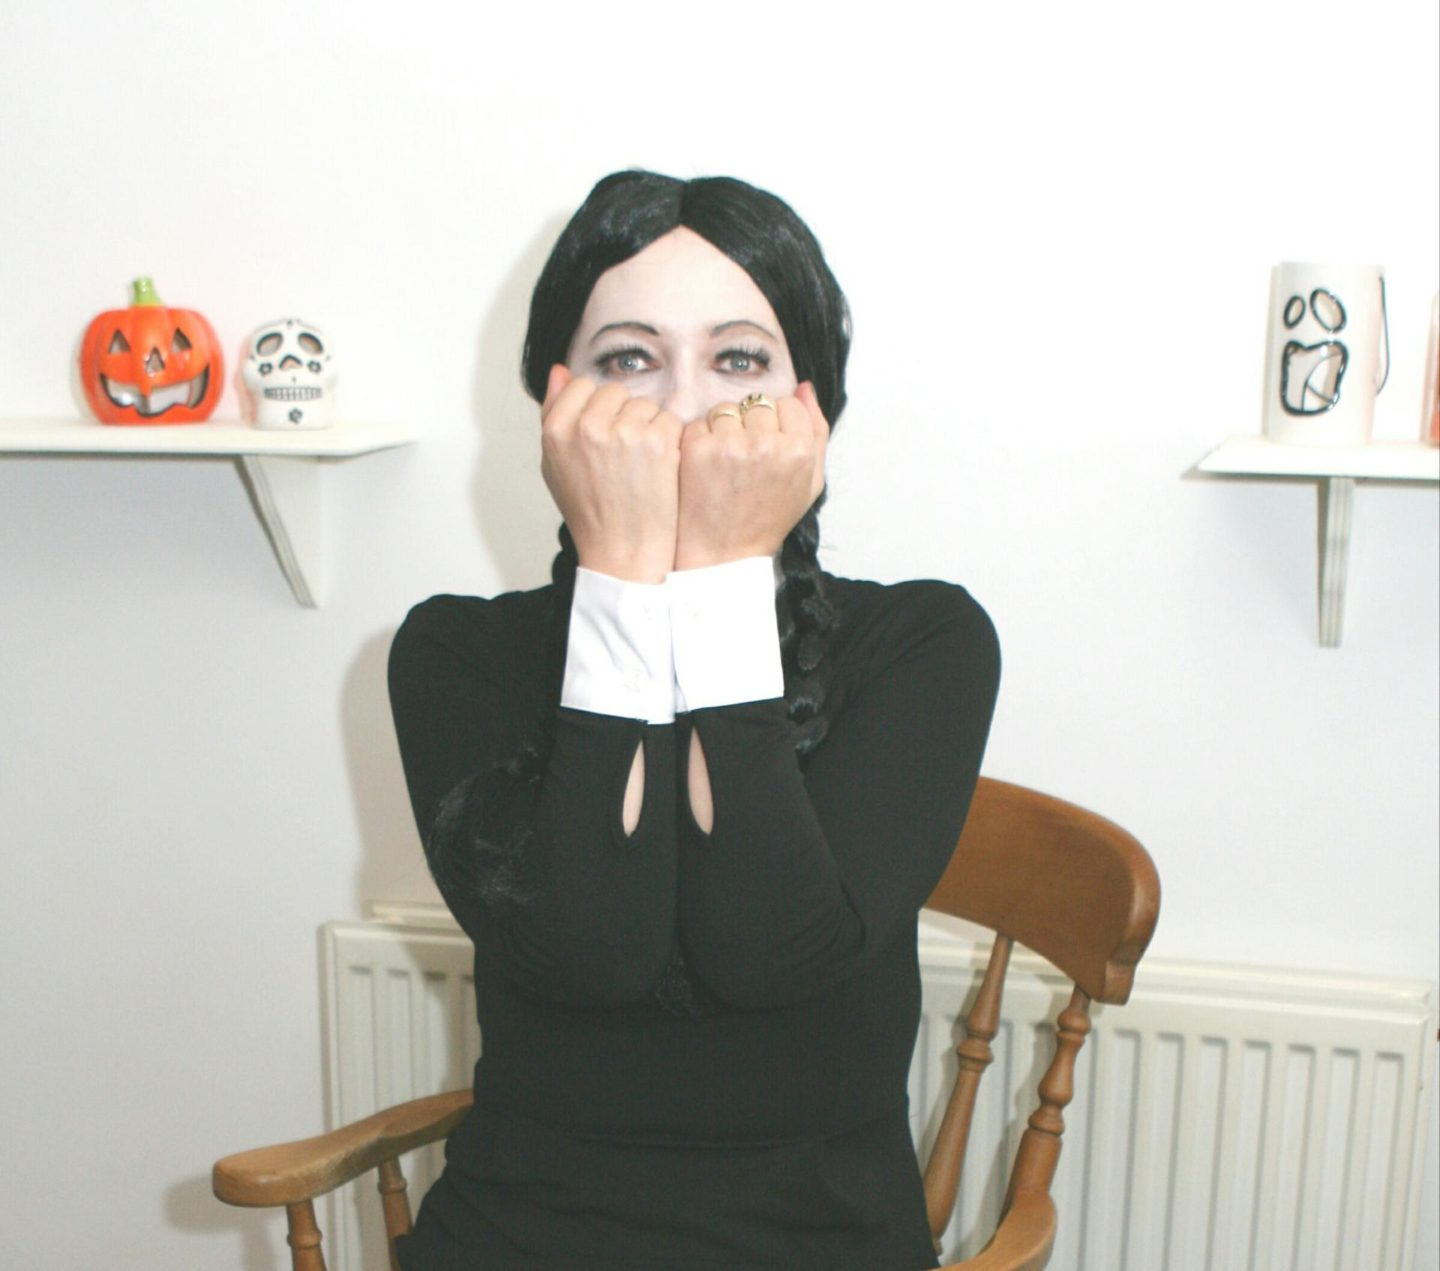 Wednesday Addams Fancy Dress